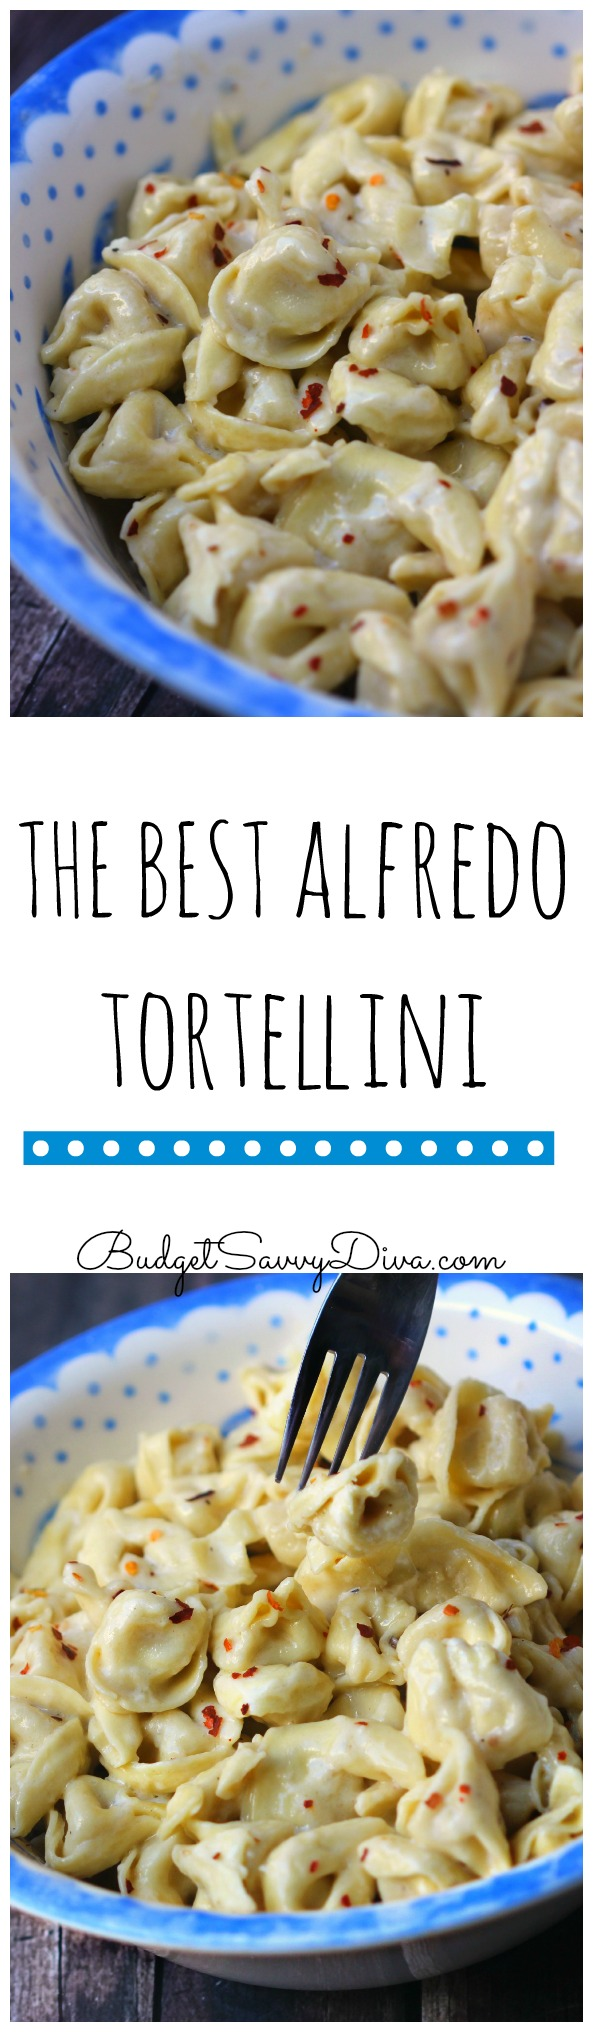 The BEST Alfredo Tortellini Recipe